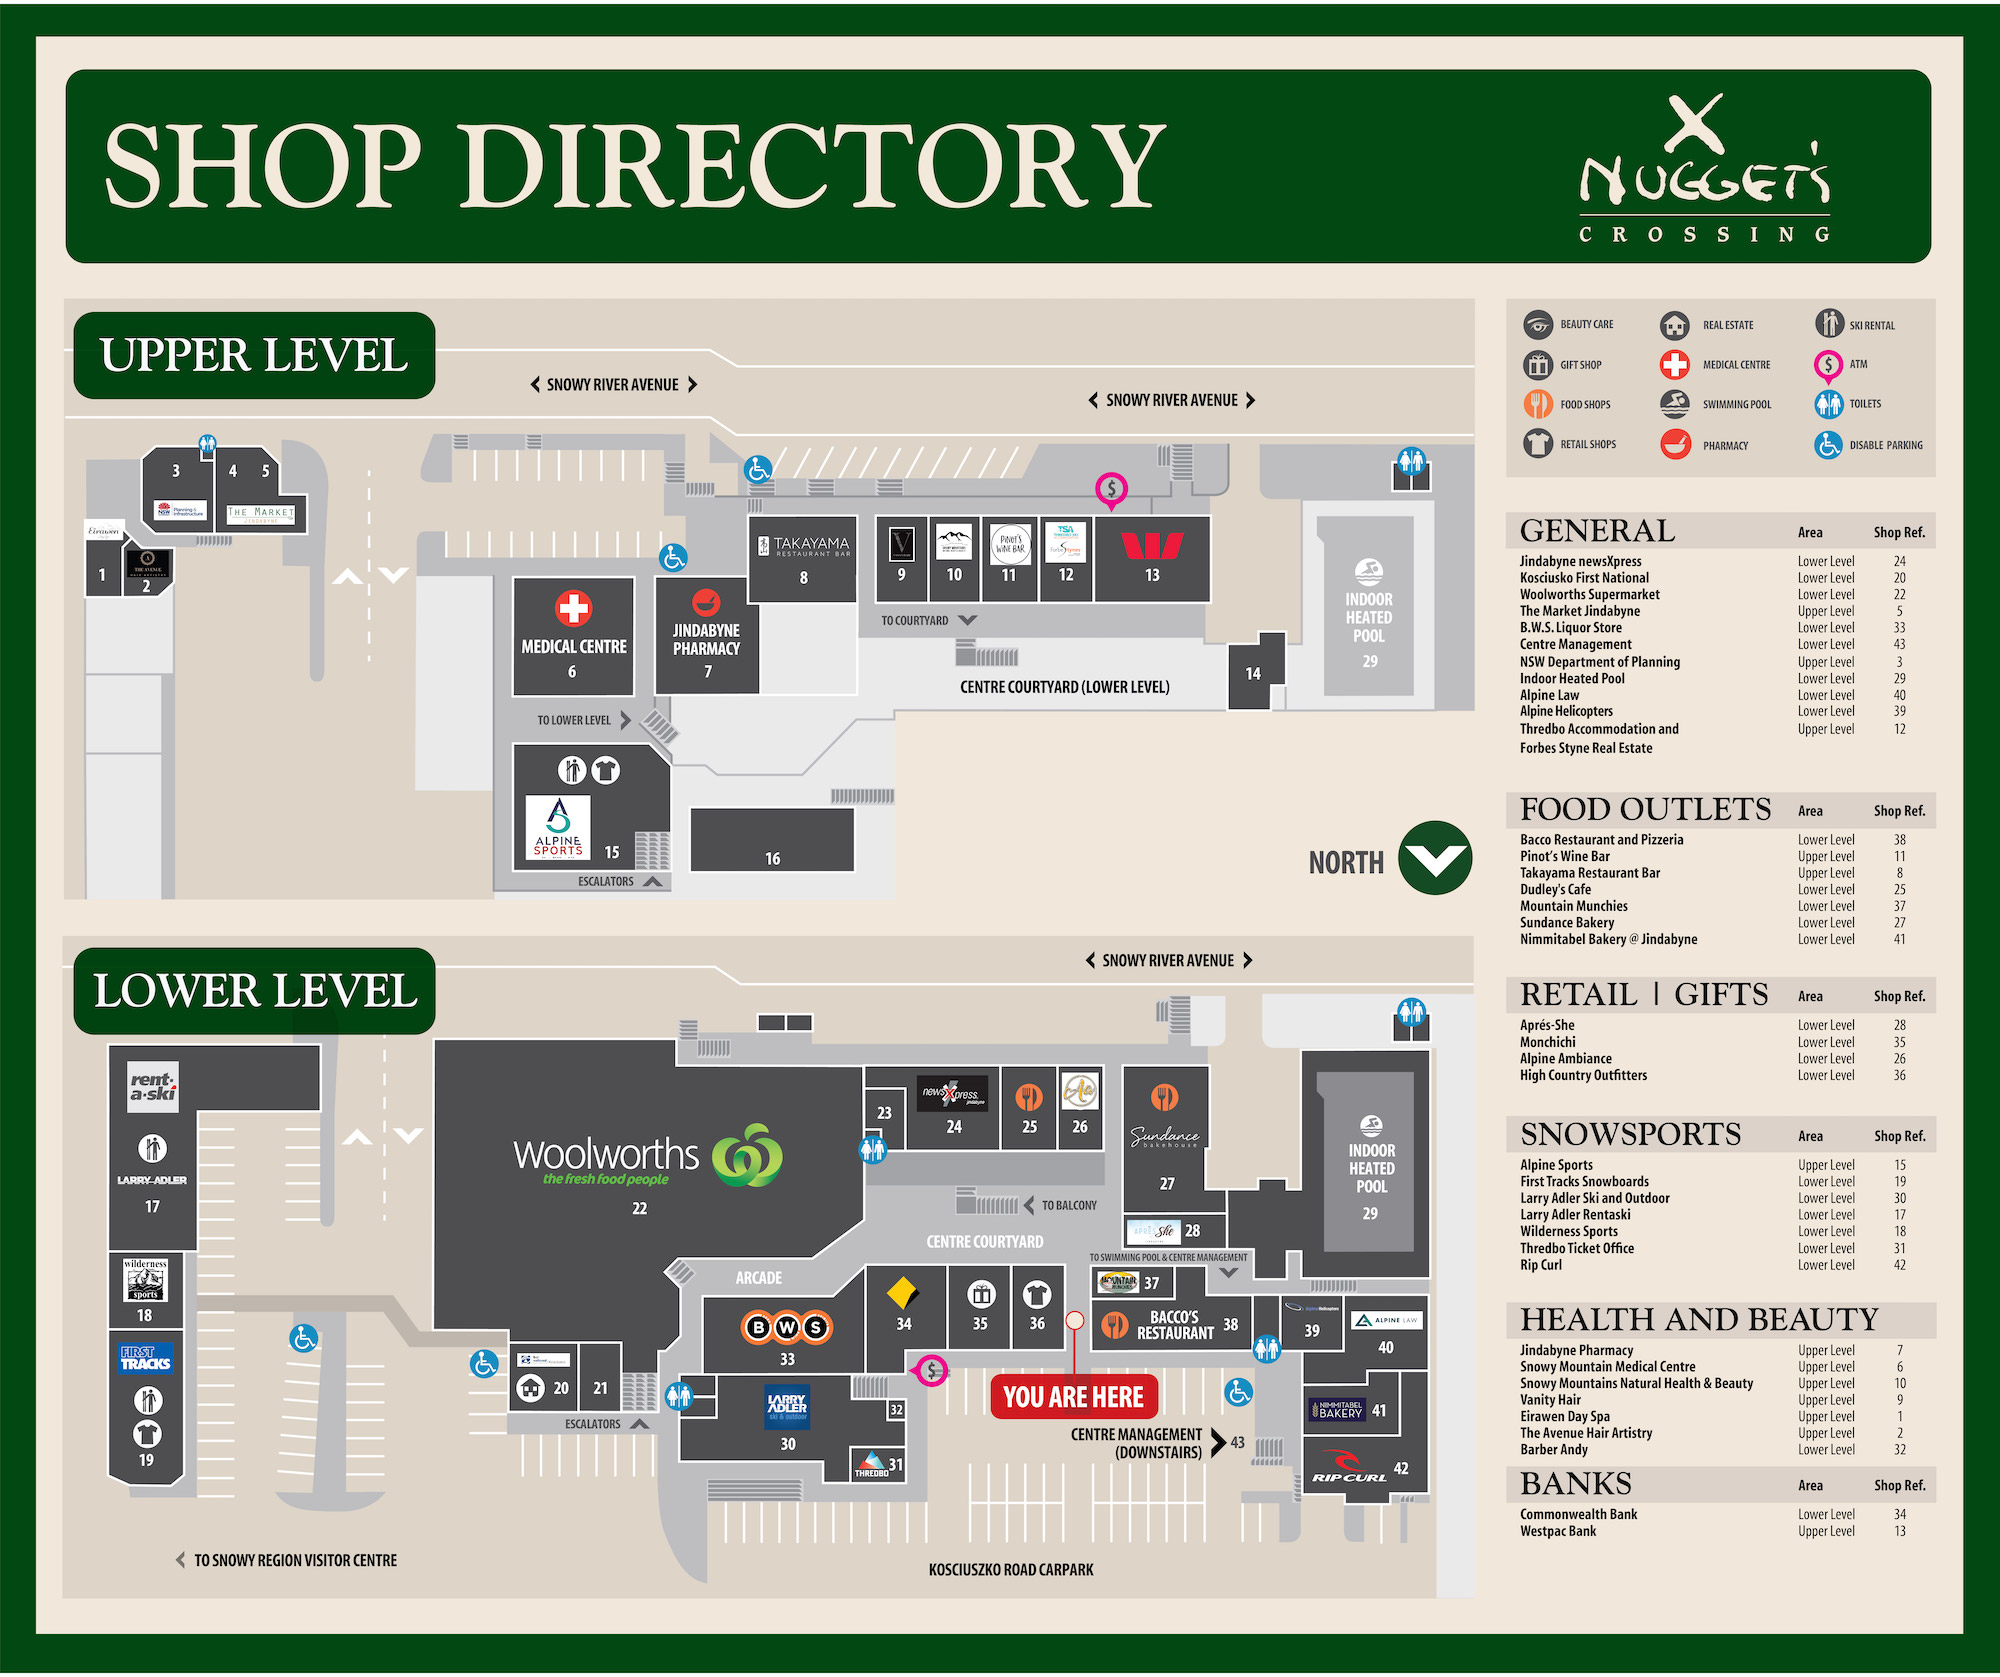 Nuggets Crossing Directory Map June 2021